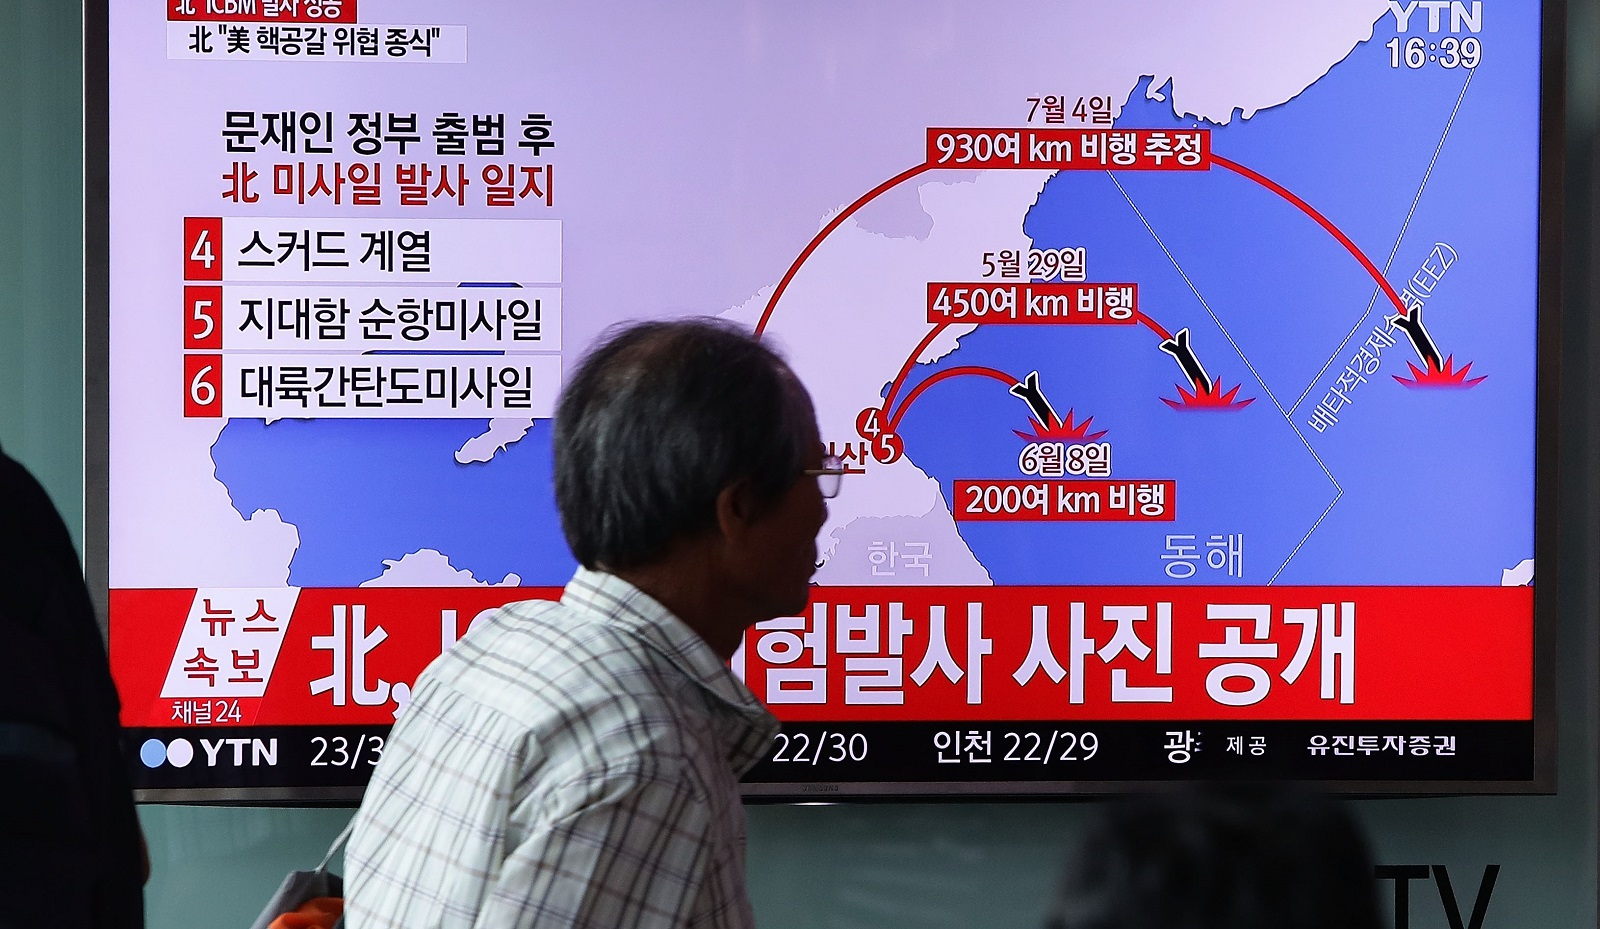 A South Korean television report on North Korea's July missile launch into Japanese waters (Photo: Chung Sung-Jun/Getty Images)